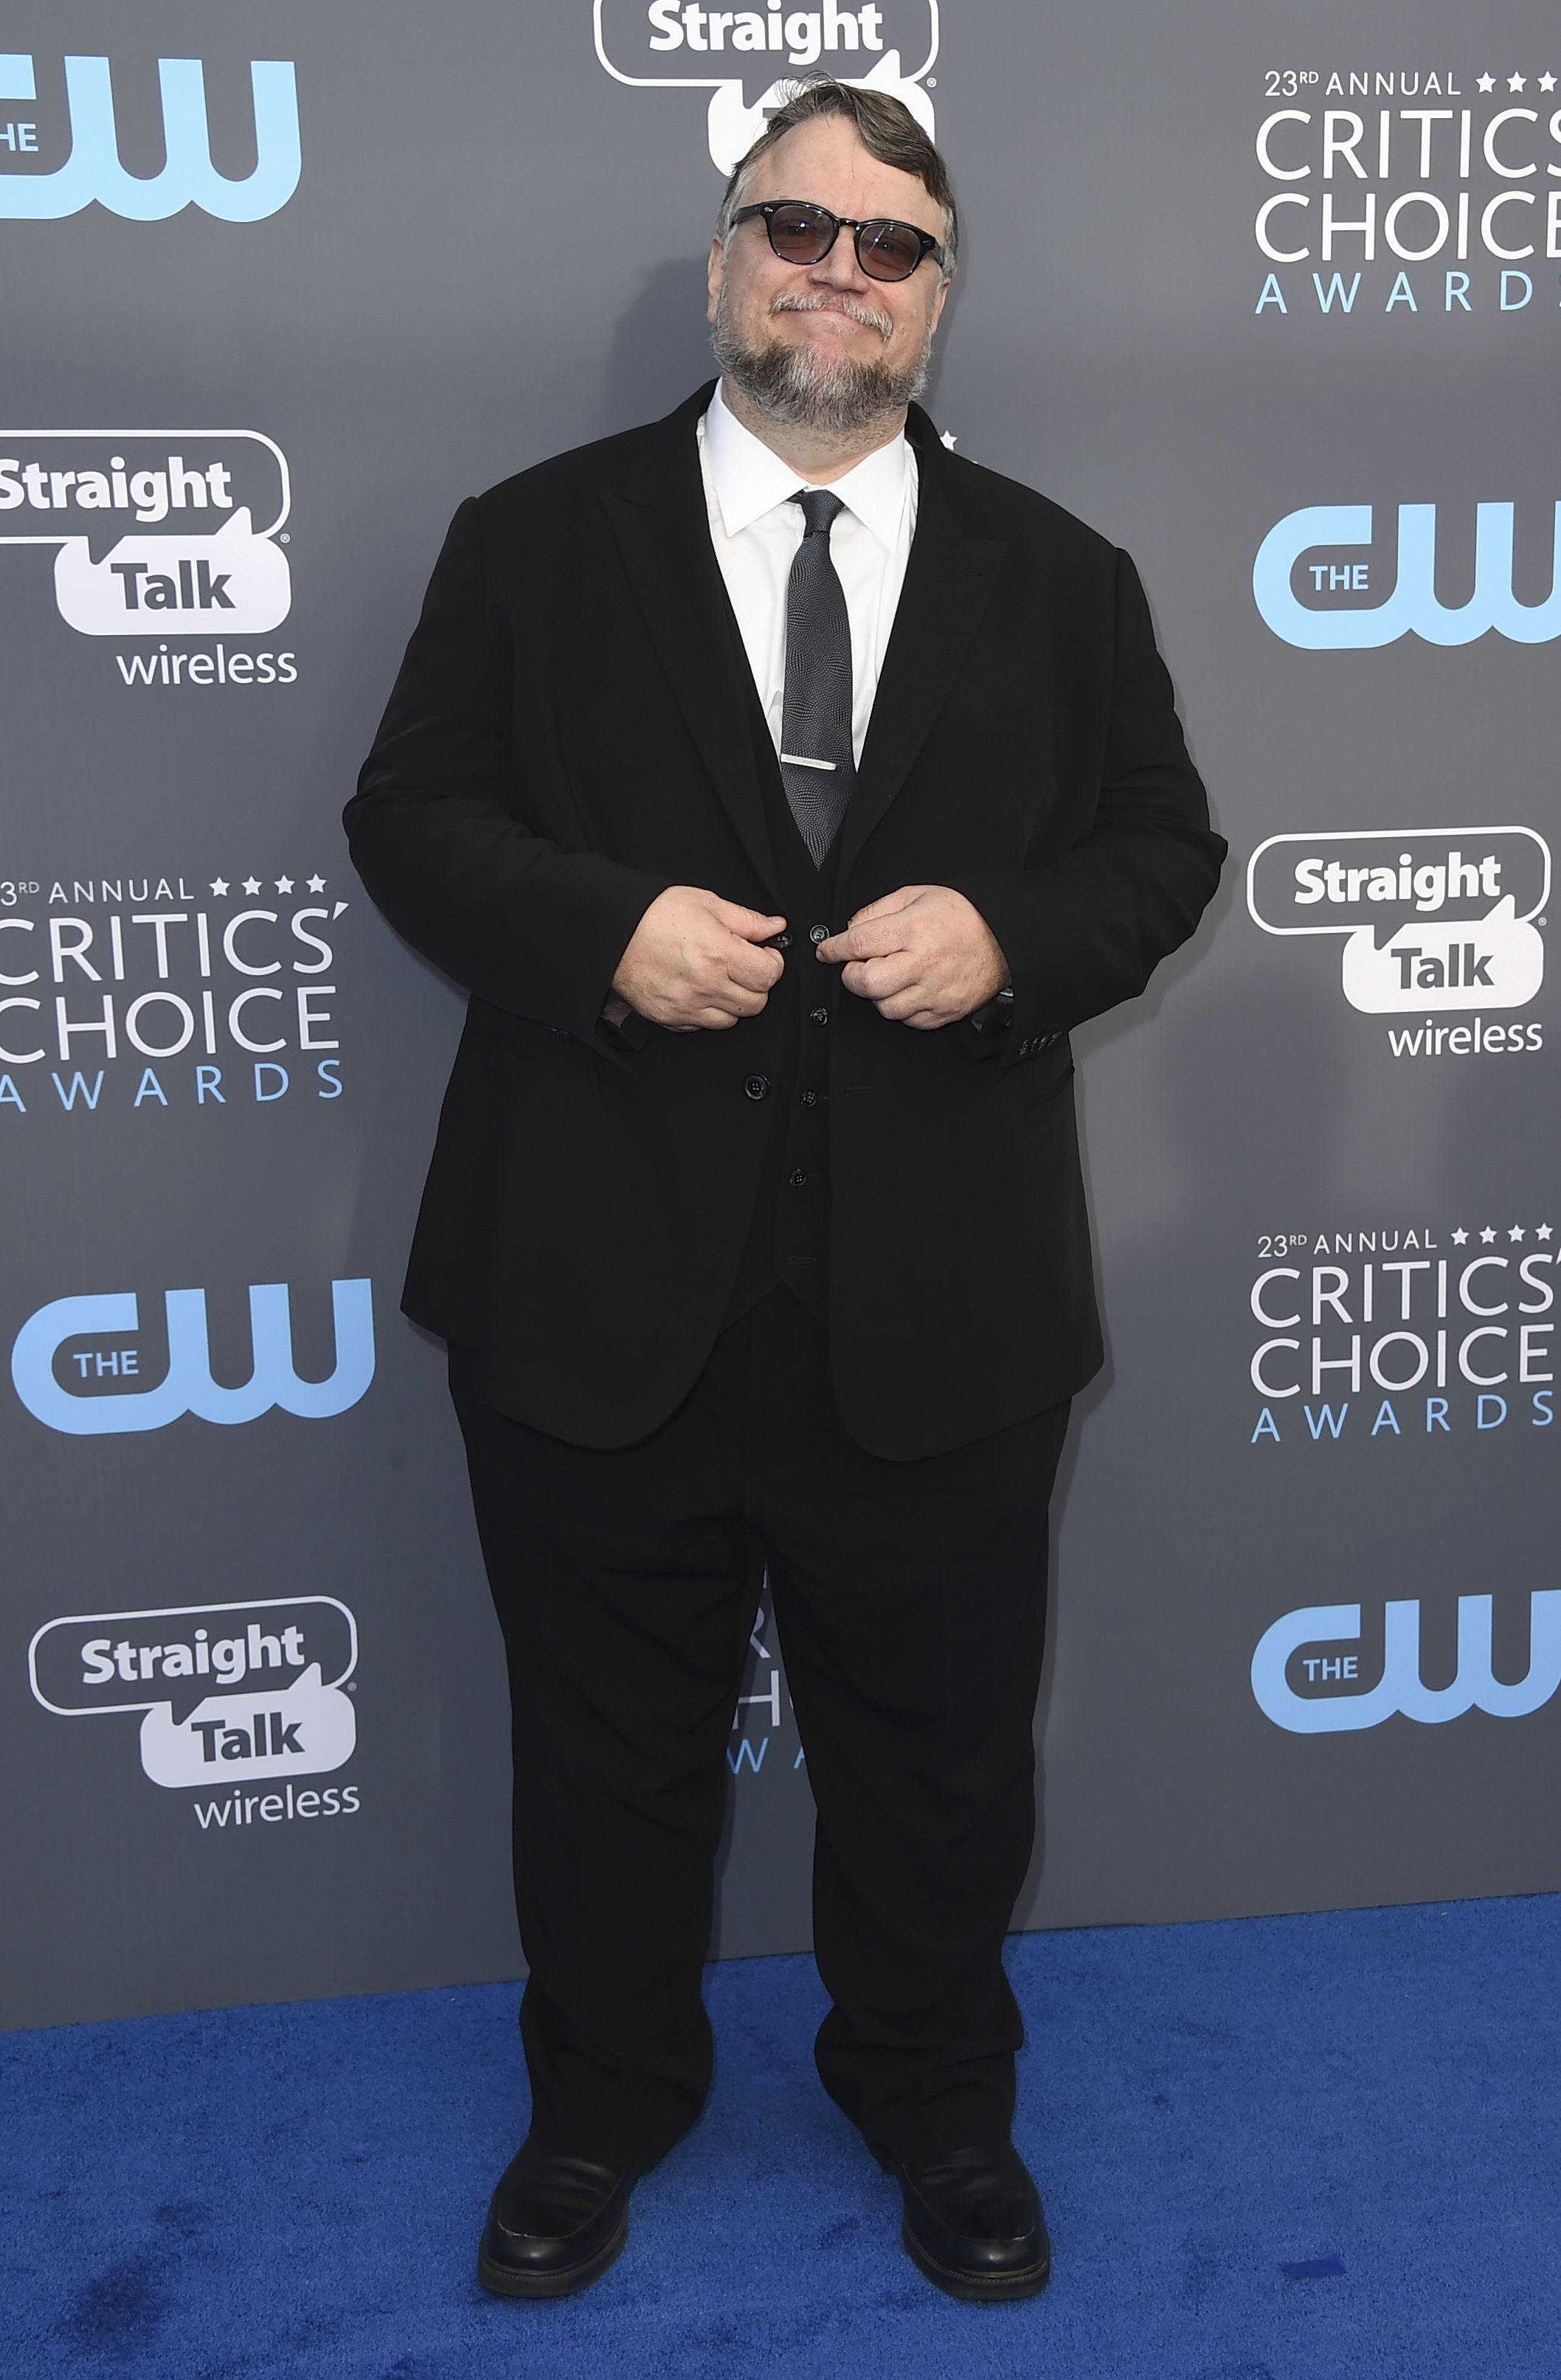 <div class='meta'><div class='origin-logo' data-origin='AP'></div><span class='caption-text' data-credit='Jordan Strauss/Invision/AP'>Guillermo del Toro arrives at the 23rd annual Critics' Choice Awards at the Barker Hangar on Thursday, Jan. 11, 2018, in Santa Monica, Calif.</span></div>